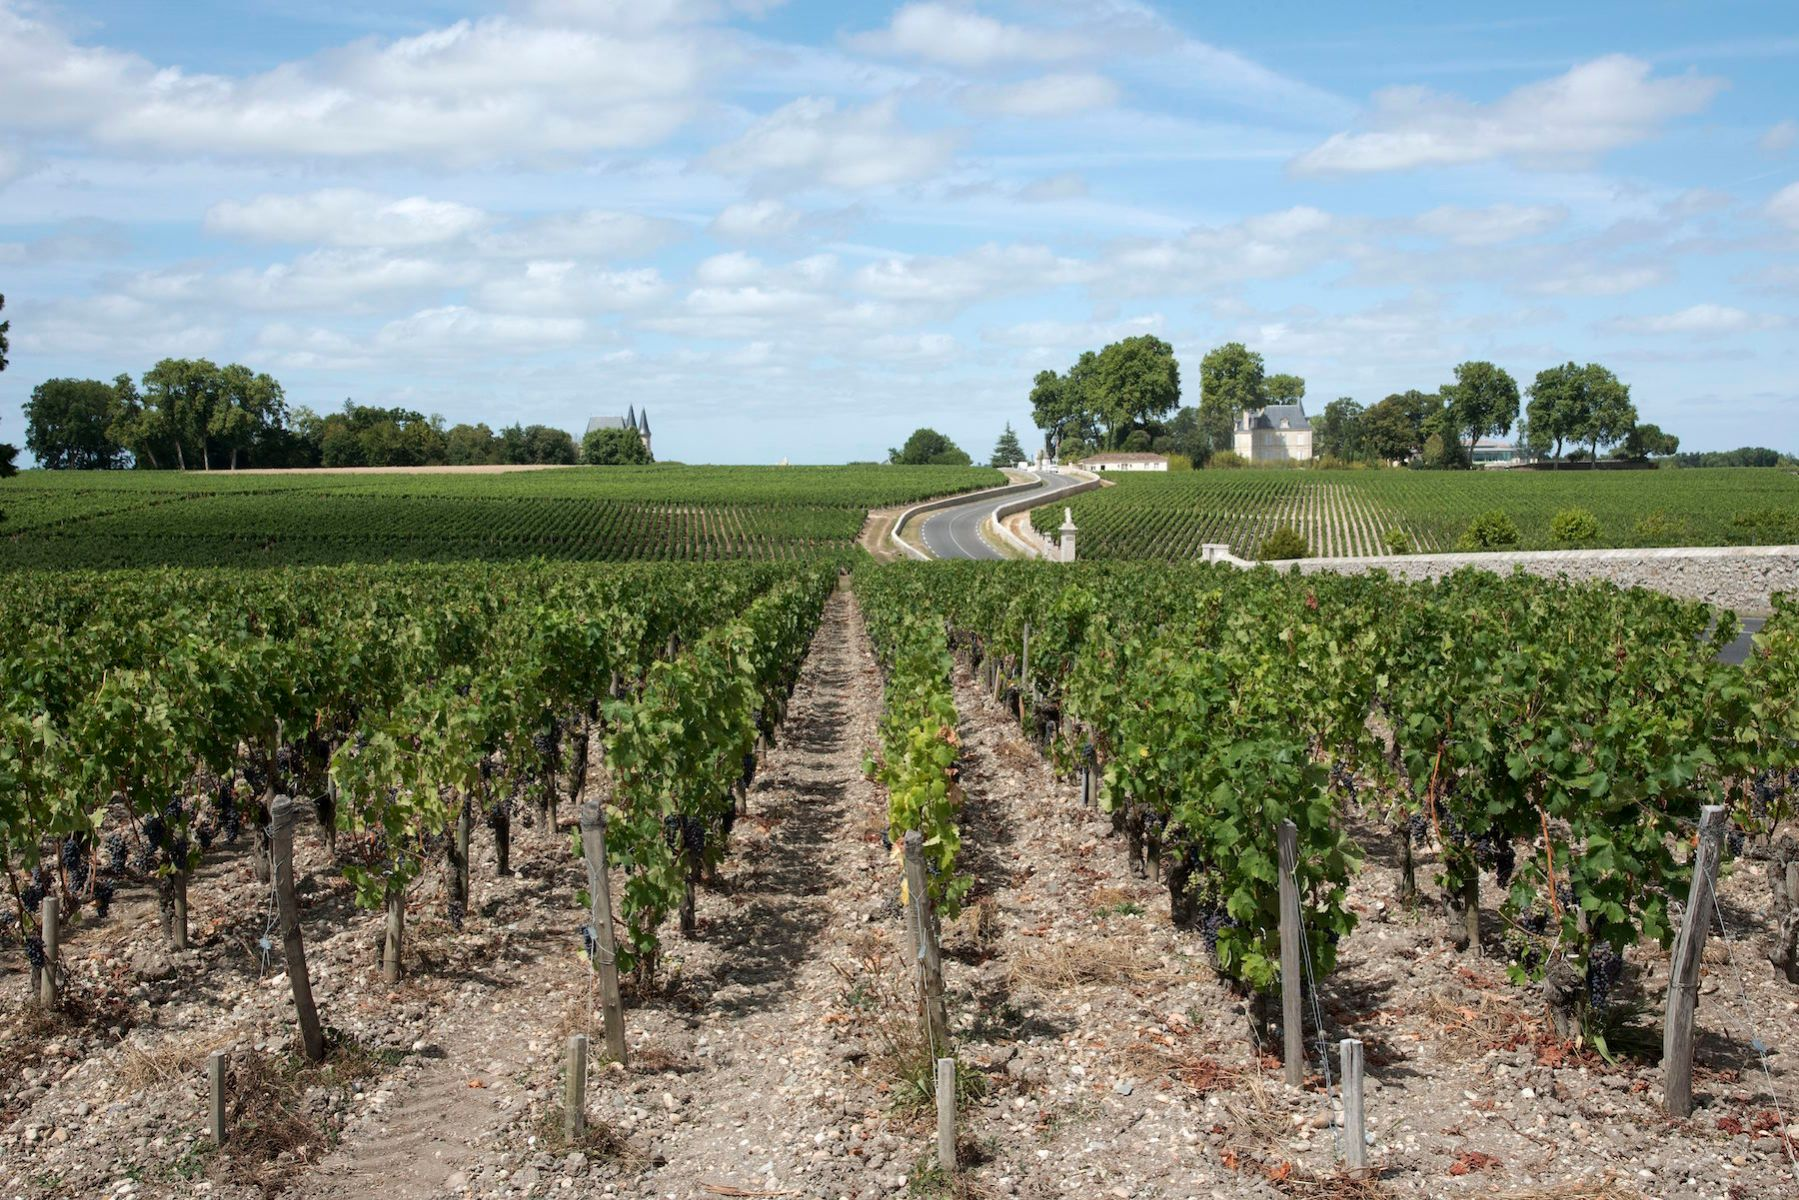 Pauillac wine region France, Vines and vineyards in Pauillac a wine producing area of the Bordeaux region France. (Photo by: Education Images/UIG via Getty Images)